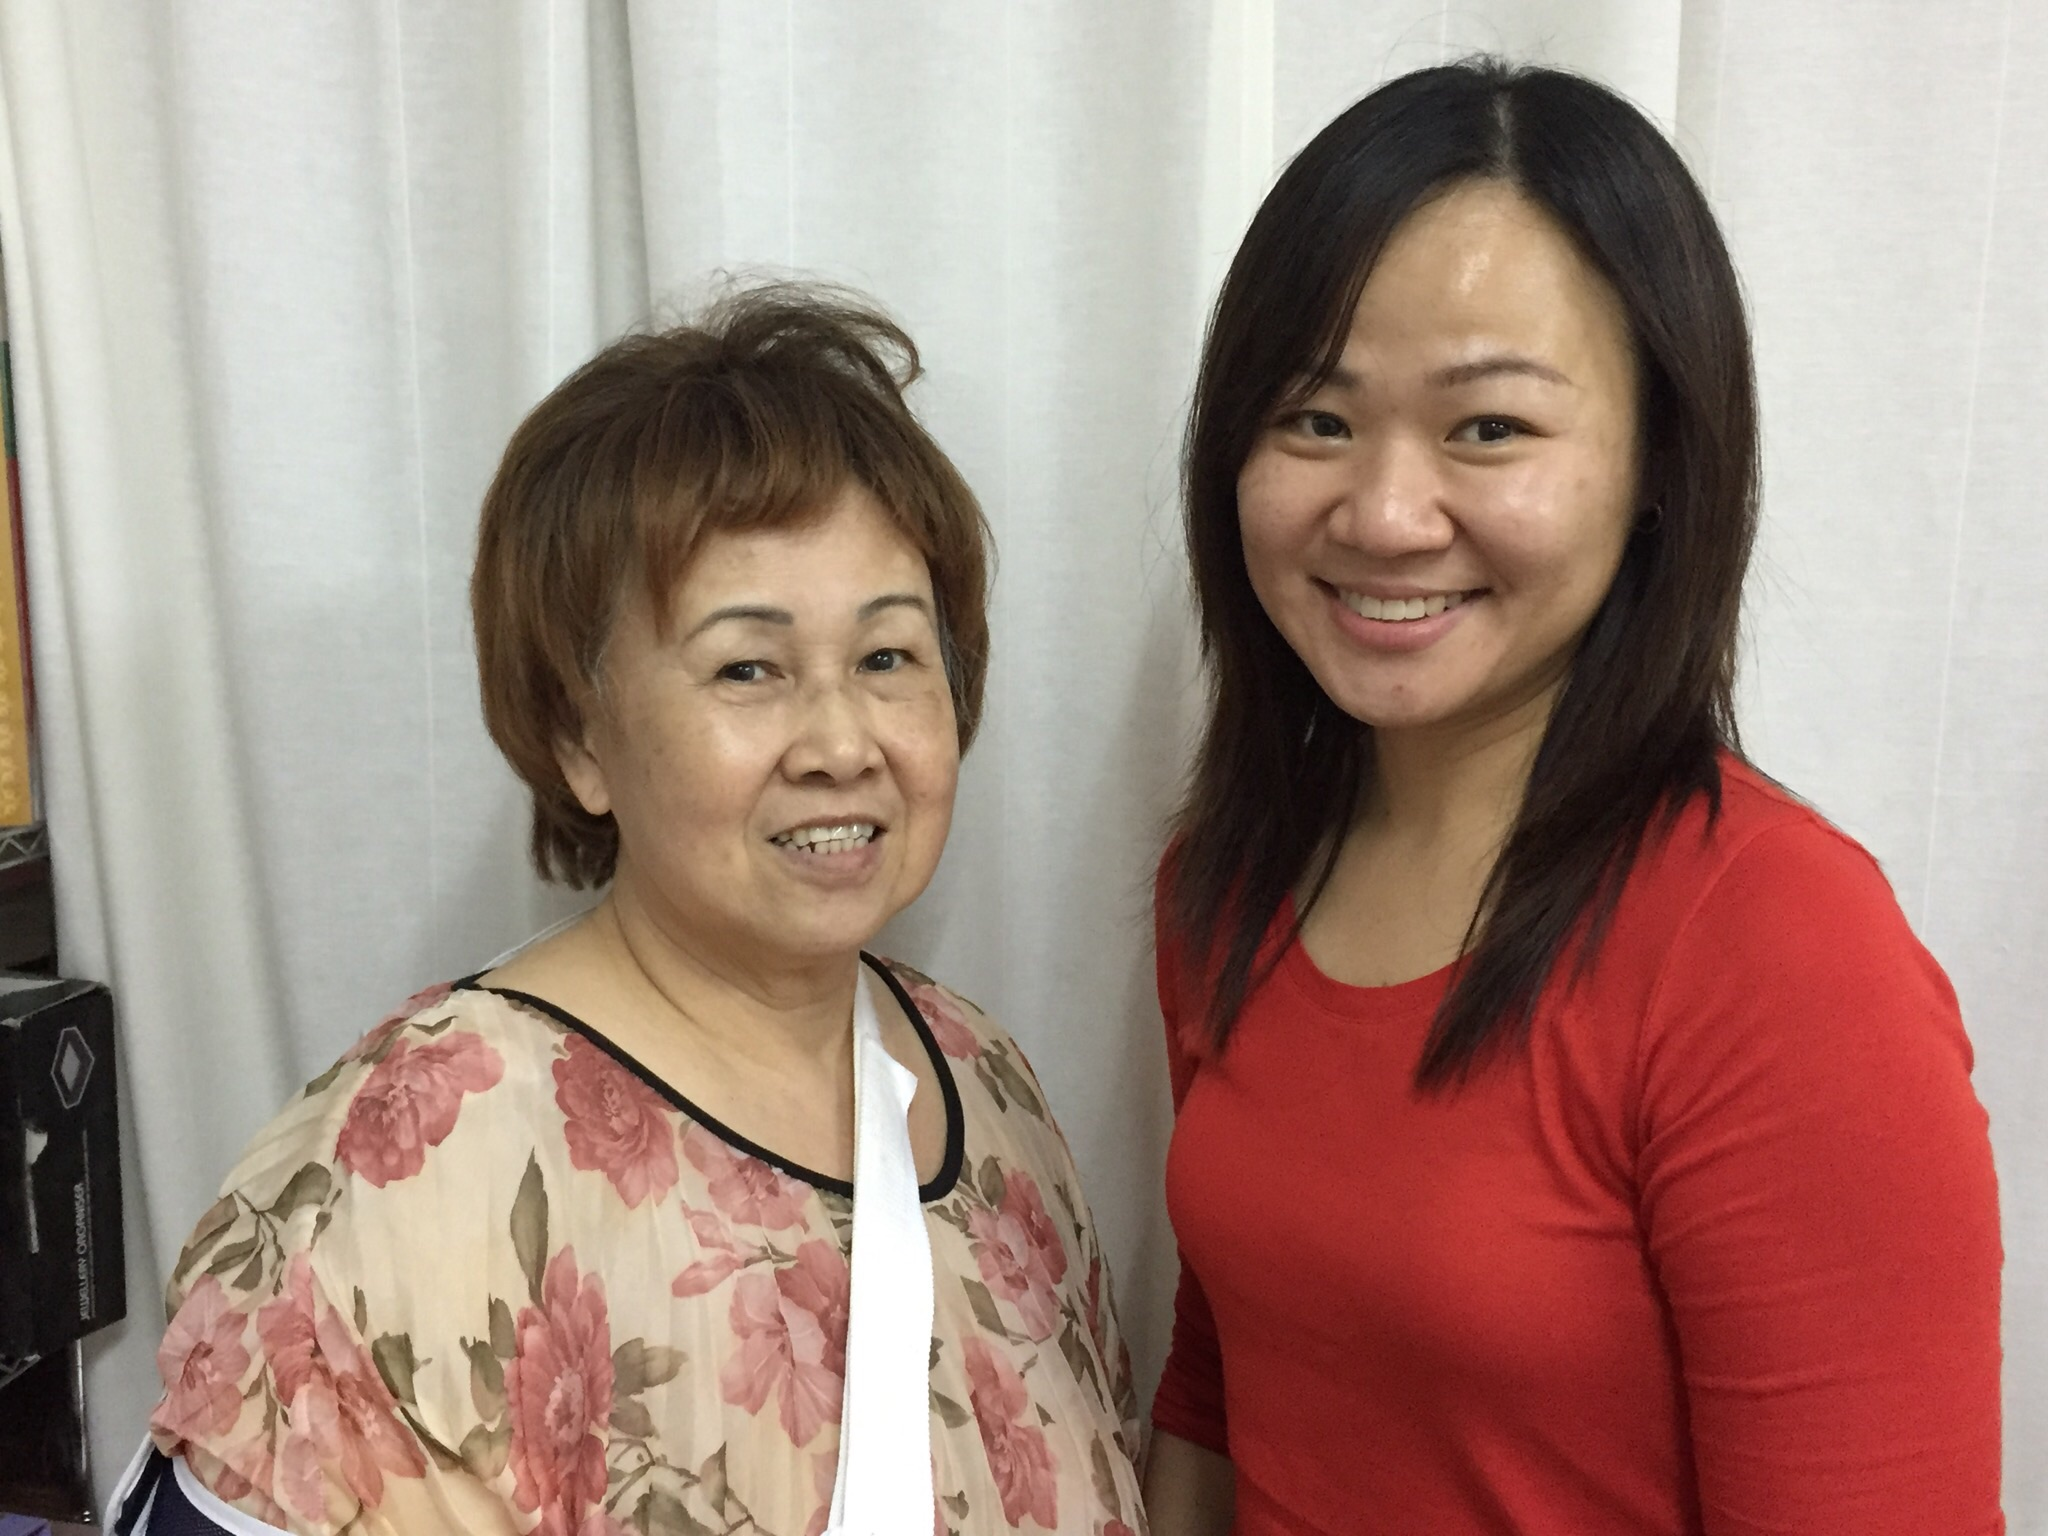 Careseeker Madam Serene Kwek looking radiant and upbeat, with CGA's Elaine Tan